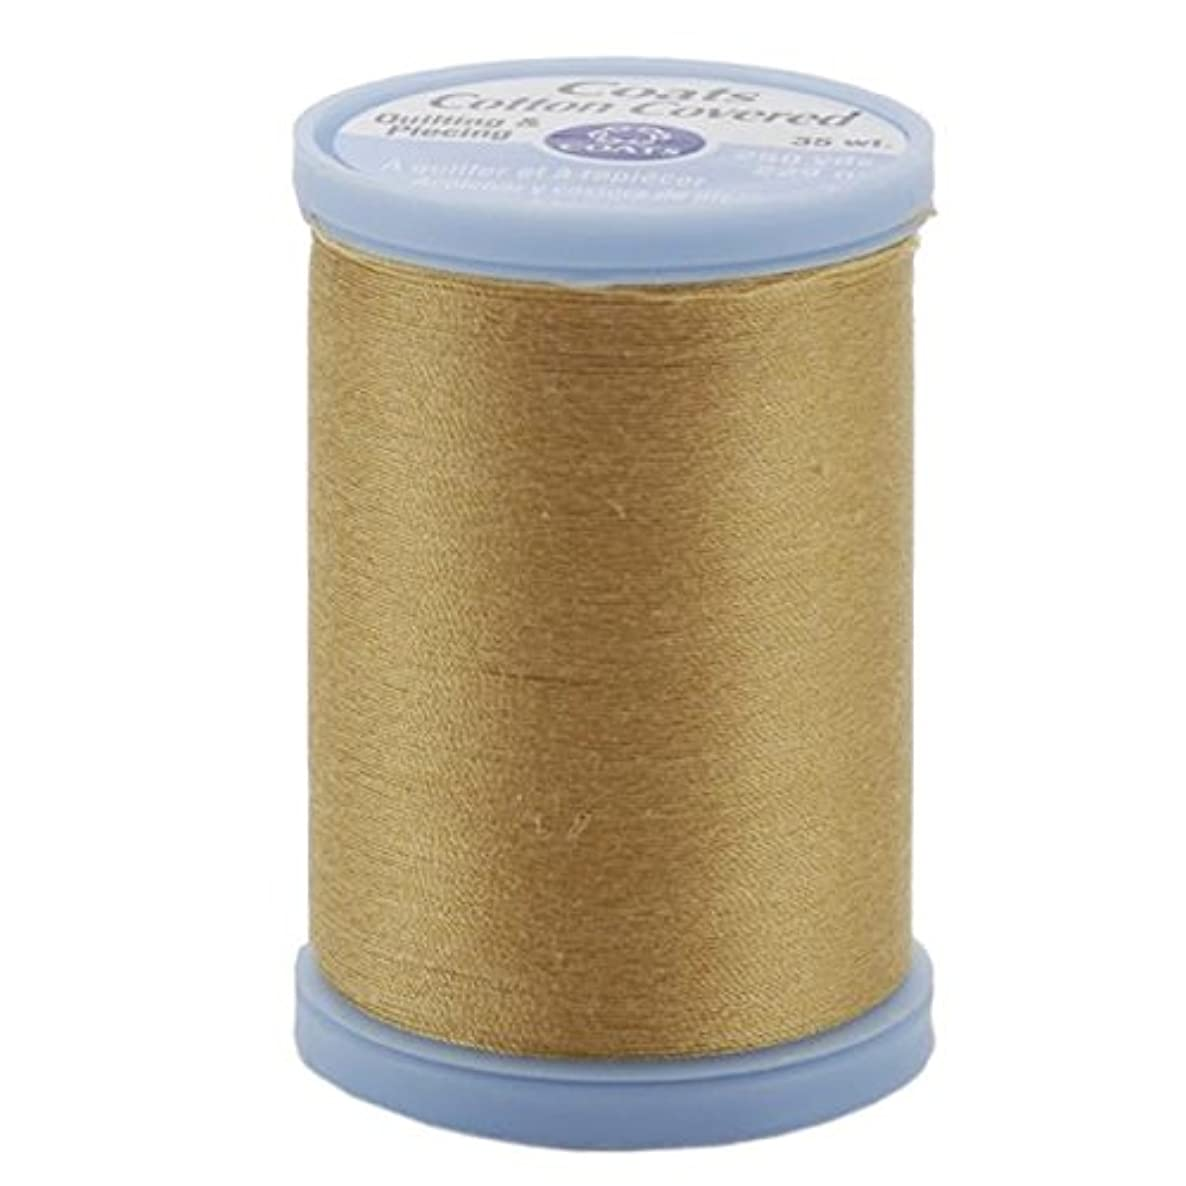 Coats: Thread & Zippers Cotton Covered Quilting and Piecing Thread, 250-Yard, Temple Gold